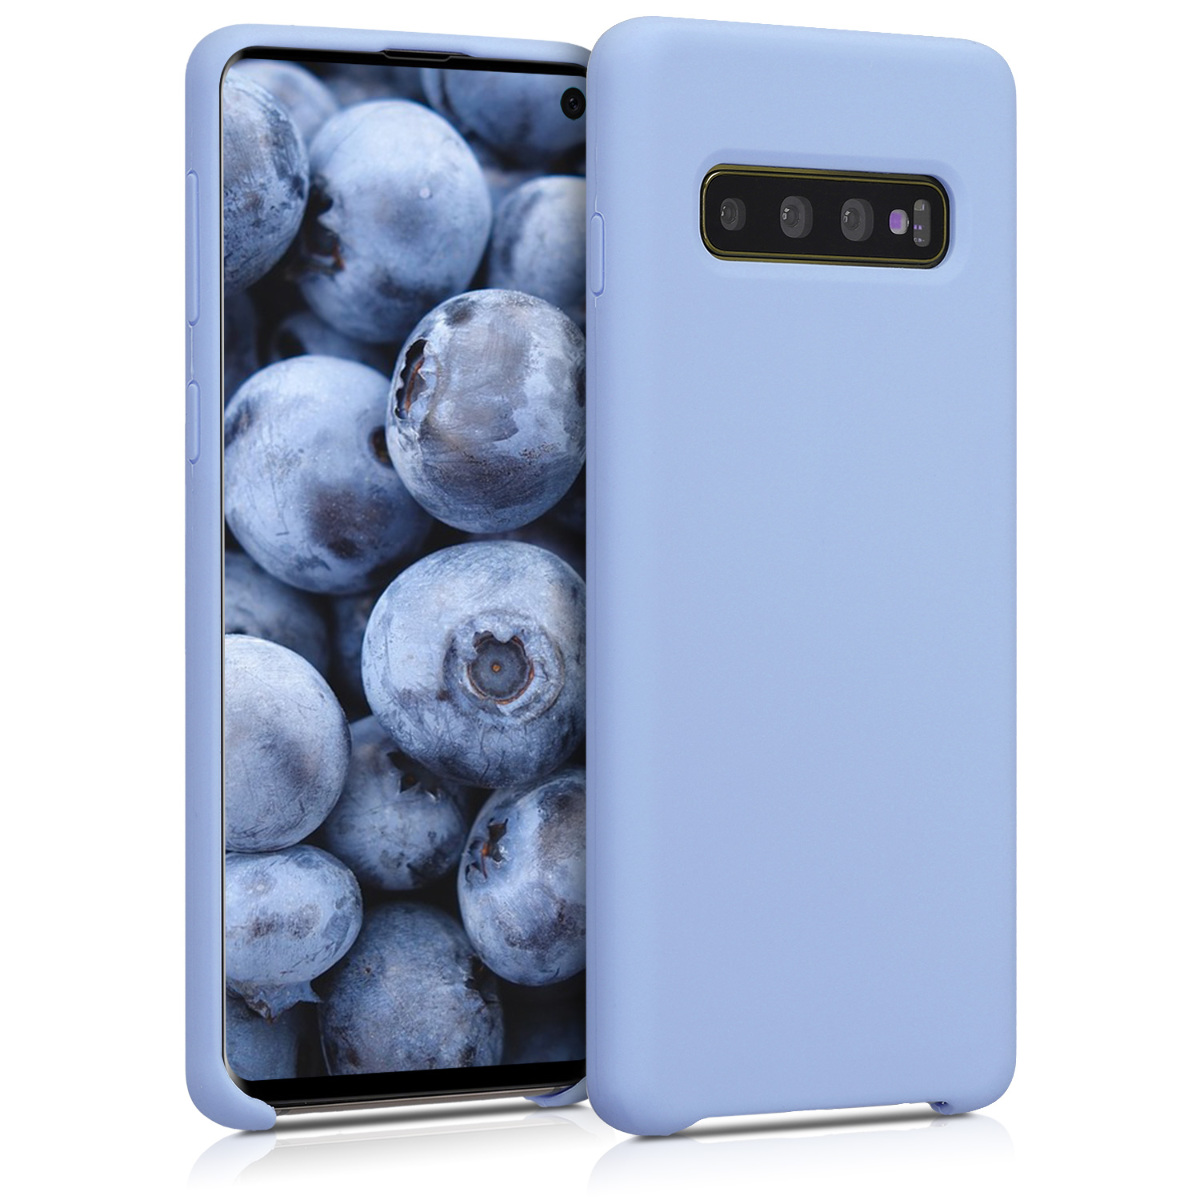 KW Θήκη Σιλικόνης Samsung Galaxy S10 - Soft Flexible Rubber Protective Cover - Light Blue Matte (47732.58)